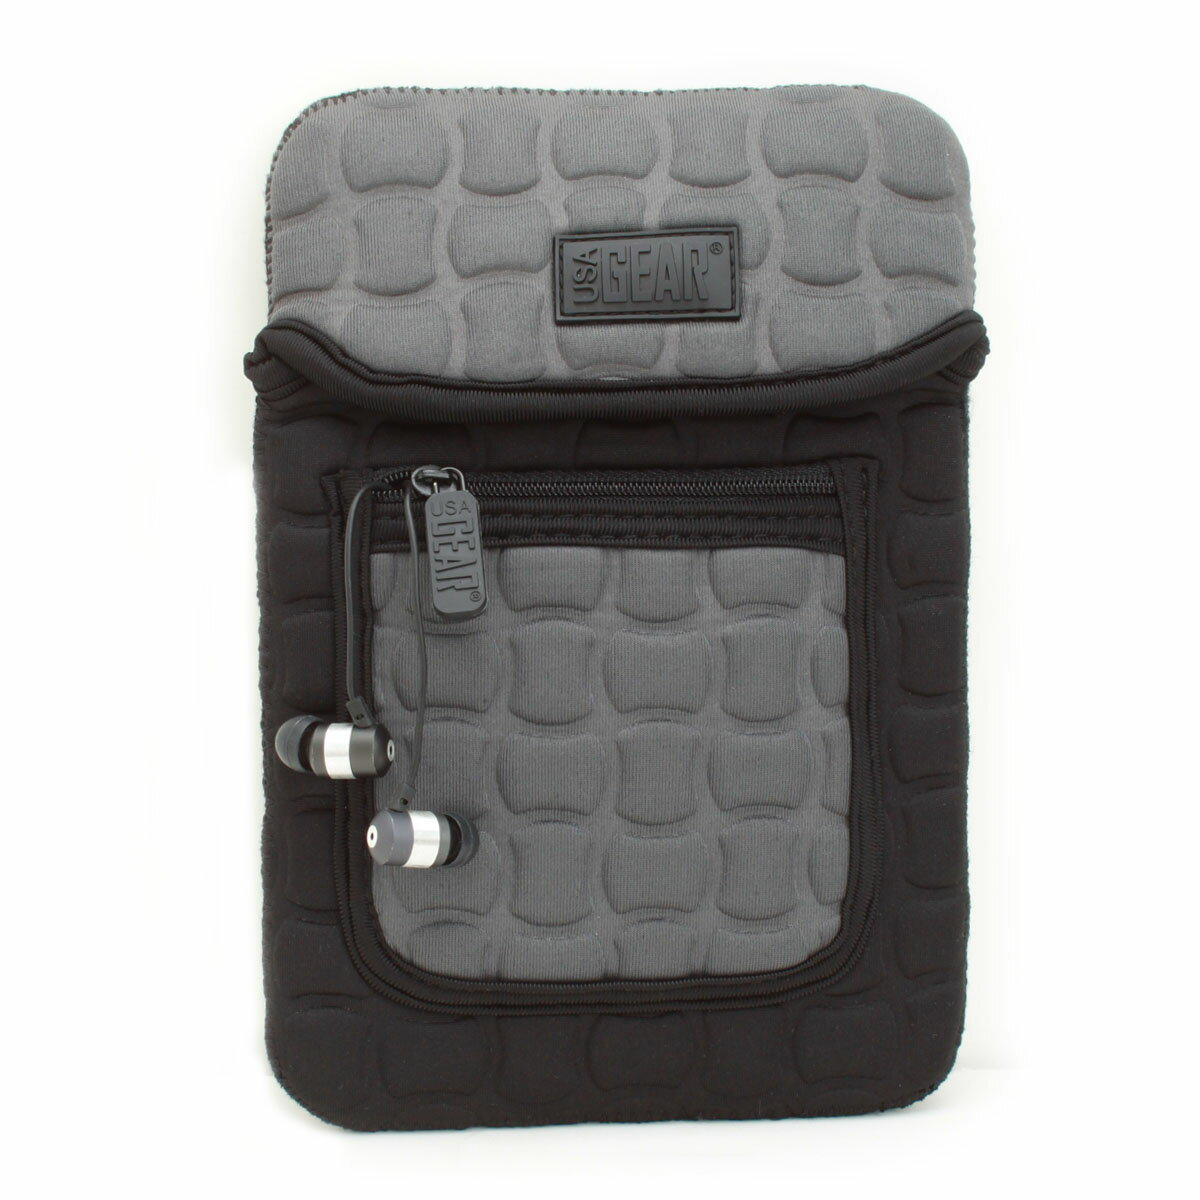 FlexARMOR X Neoprene eReader Sleeve Case with Carrying Handle , Shock Protection & Accessory Pocket 7